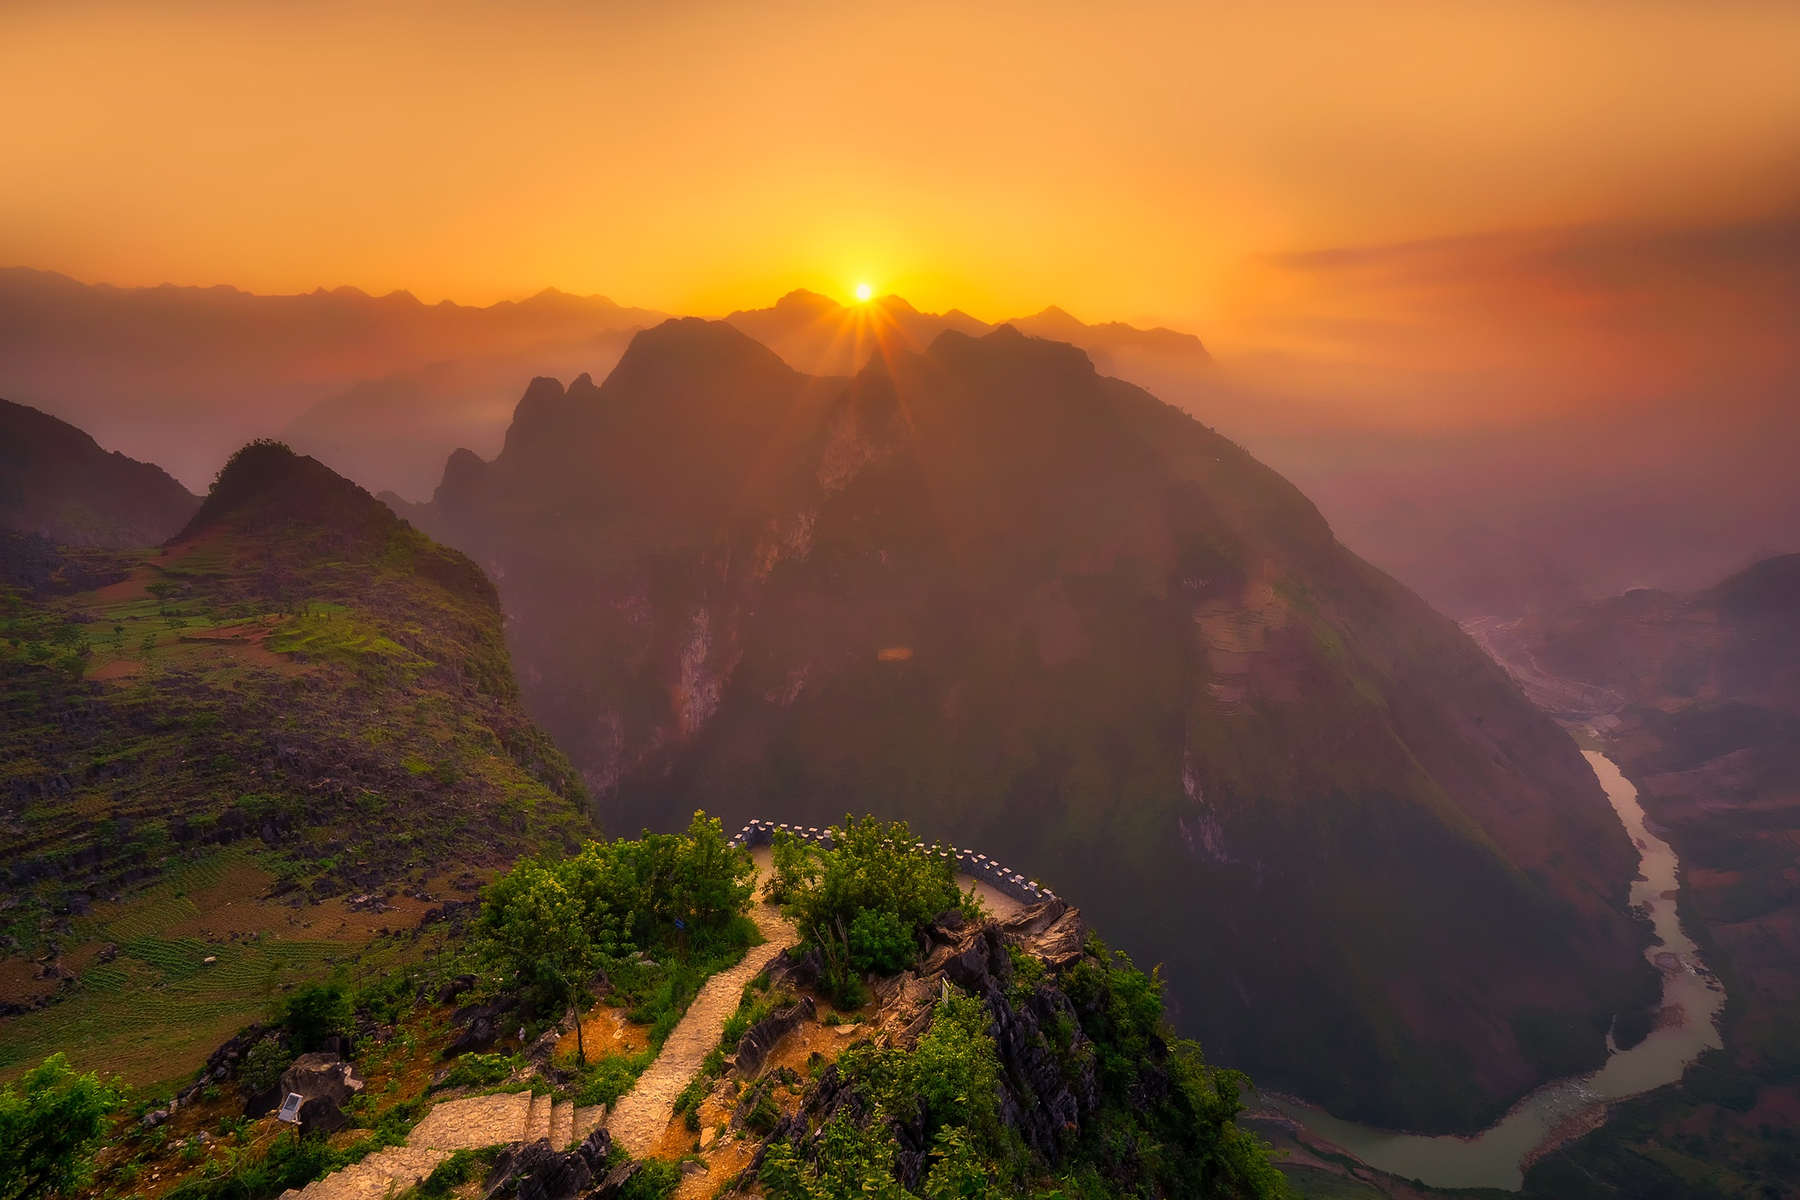 sunset in vietnam